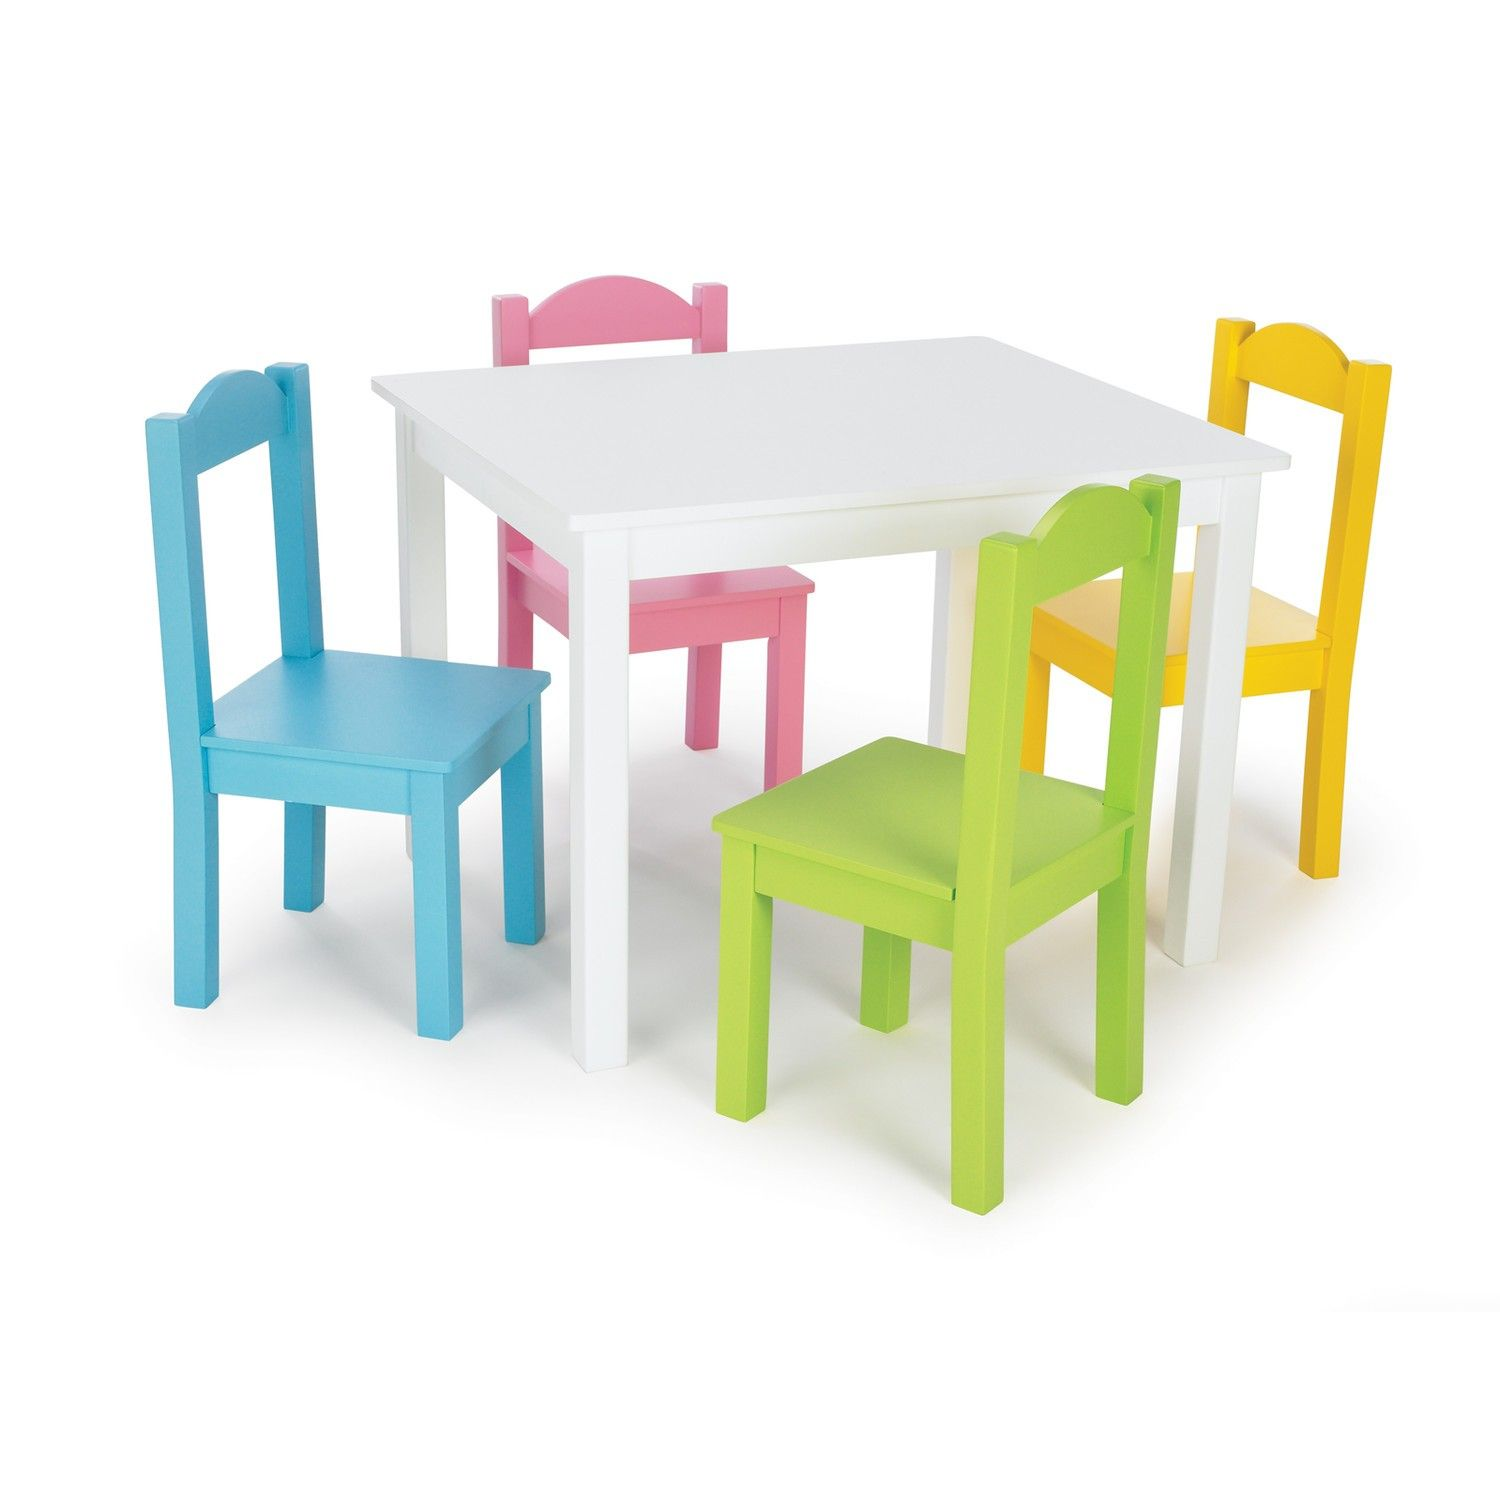 Activity Table And Chairs For Toddlers Chair And Table Kids